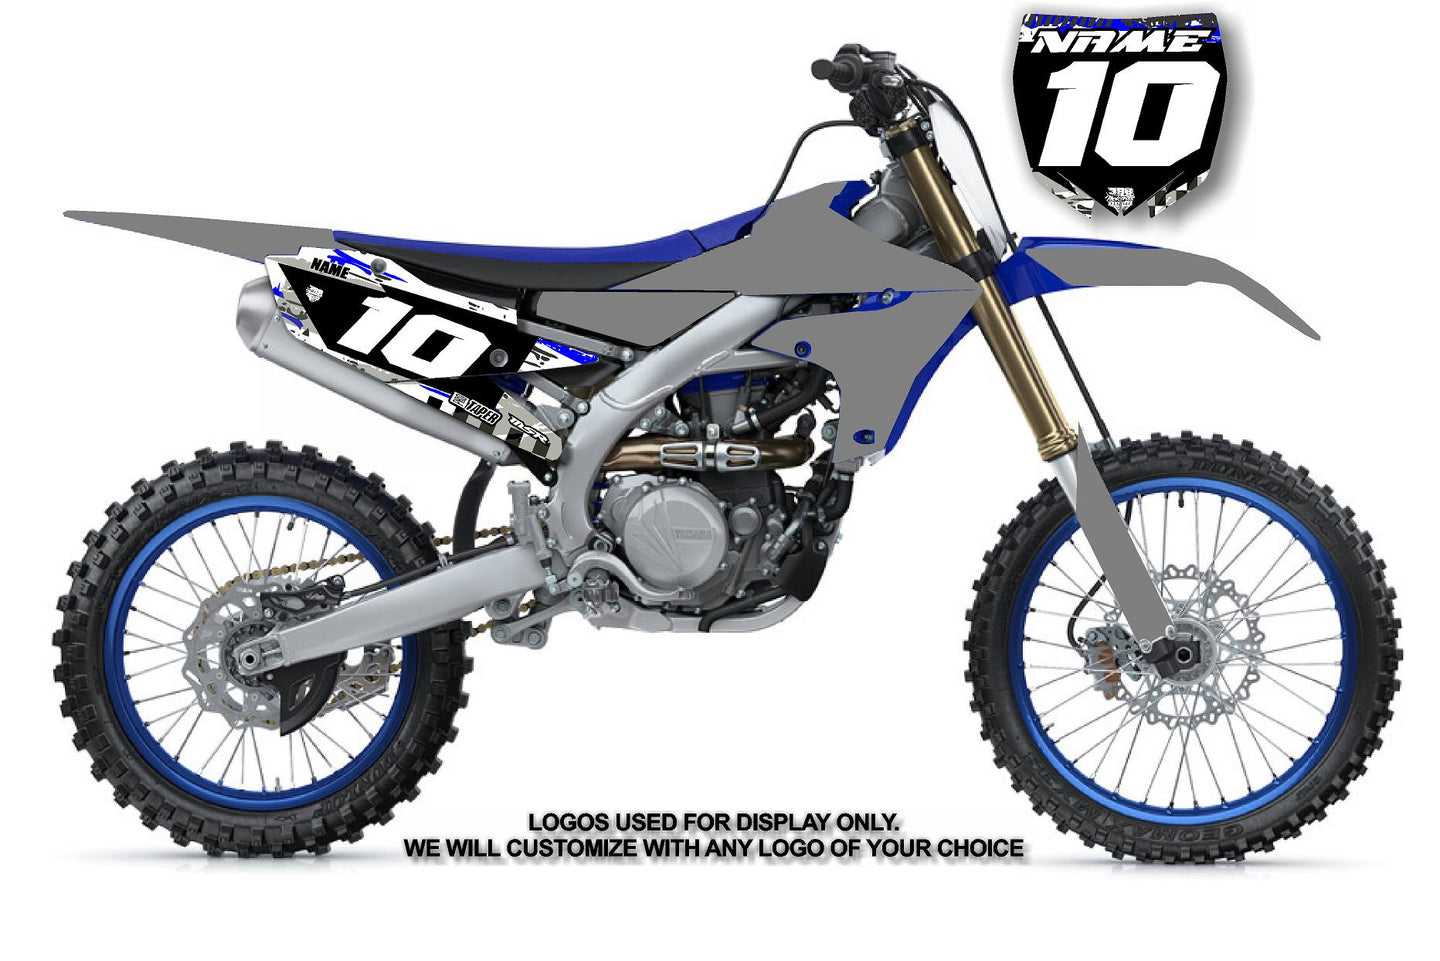 YAMAHA MX2 BACKGROUNDS